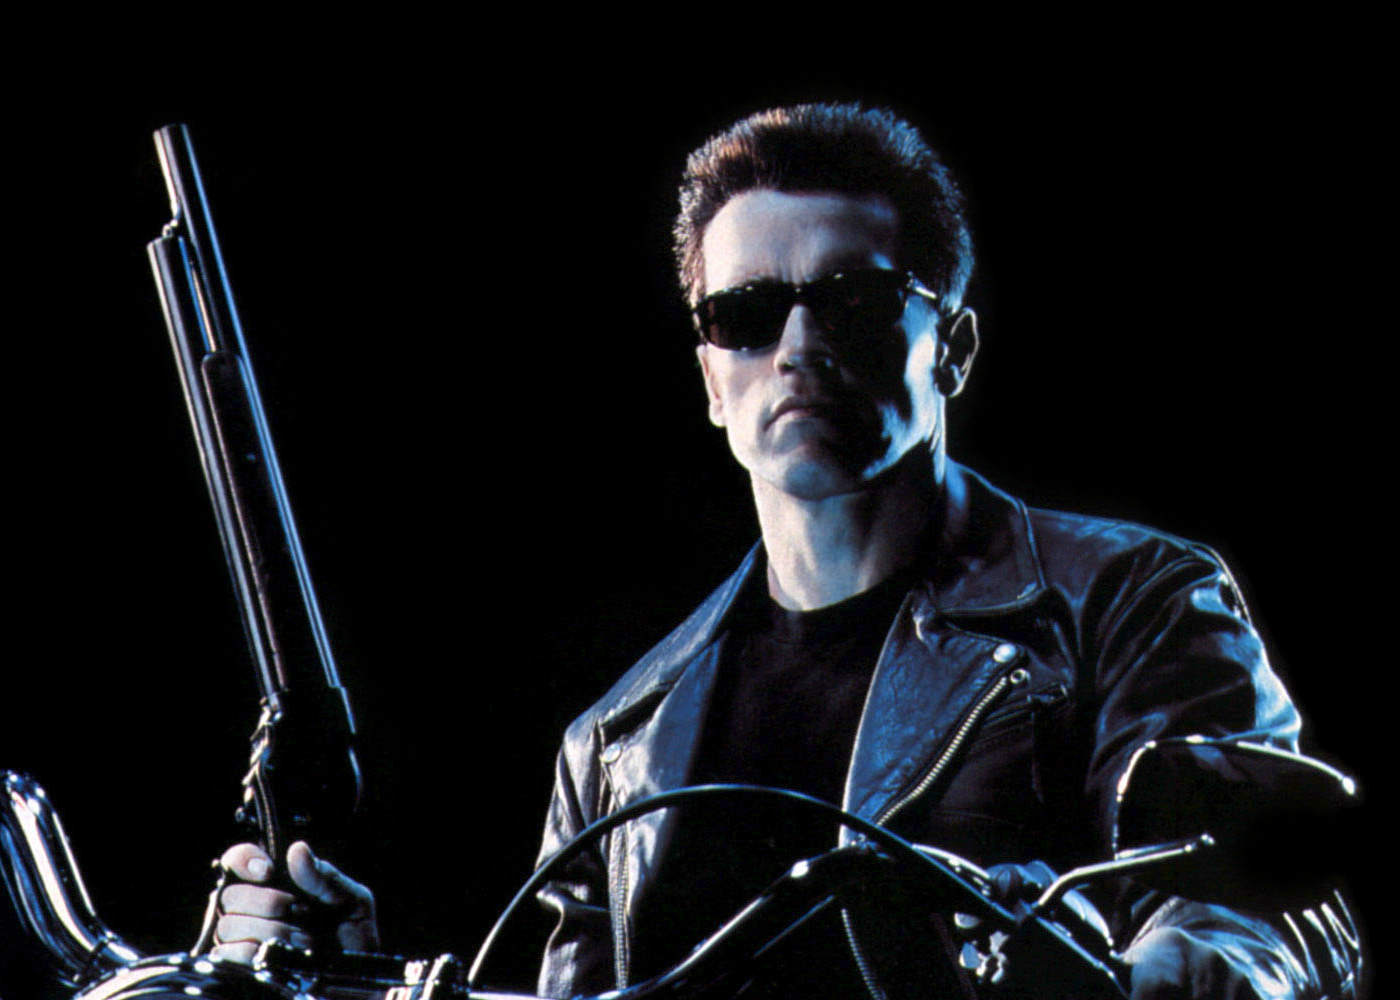 James Cameron's Terminator 2: Judgment Day 3D Gets a Trailer